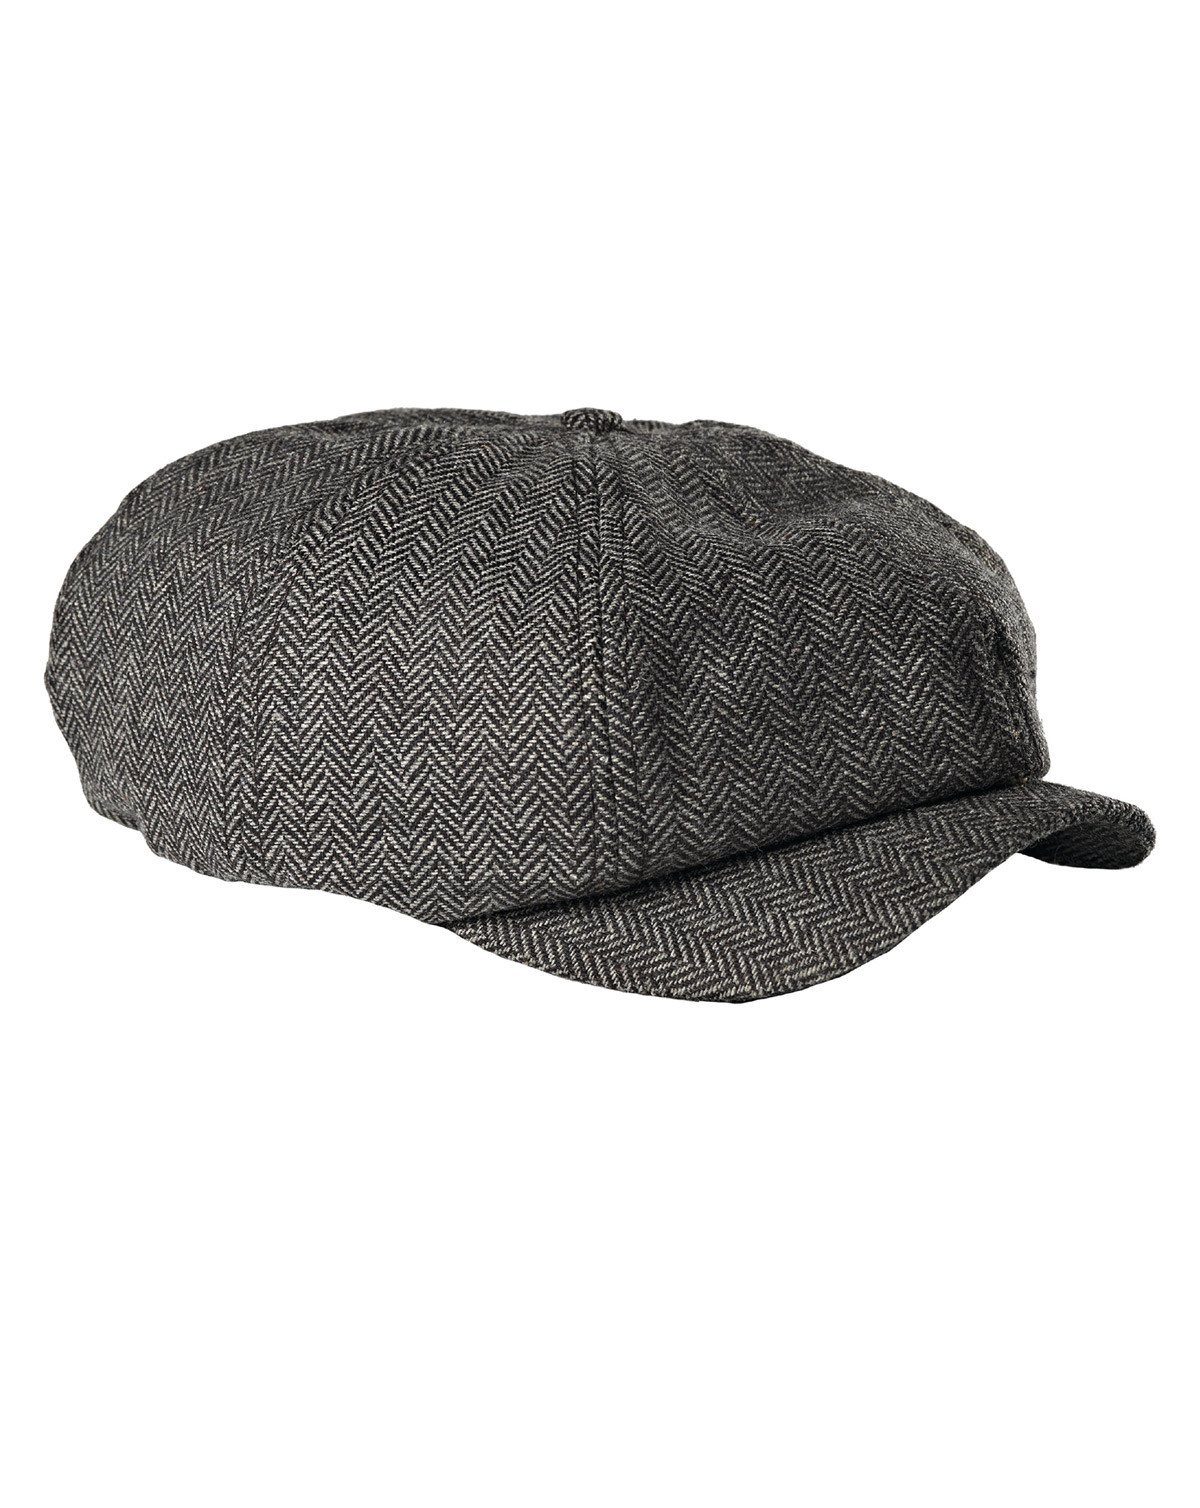 Image of   Dickies Tucson Flat Cap (Sort, One Size)